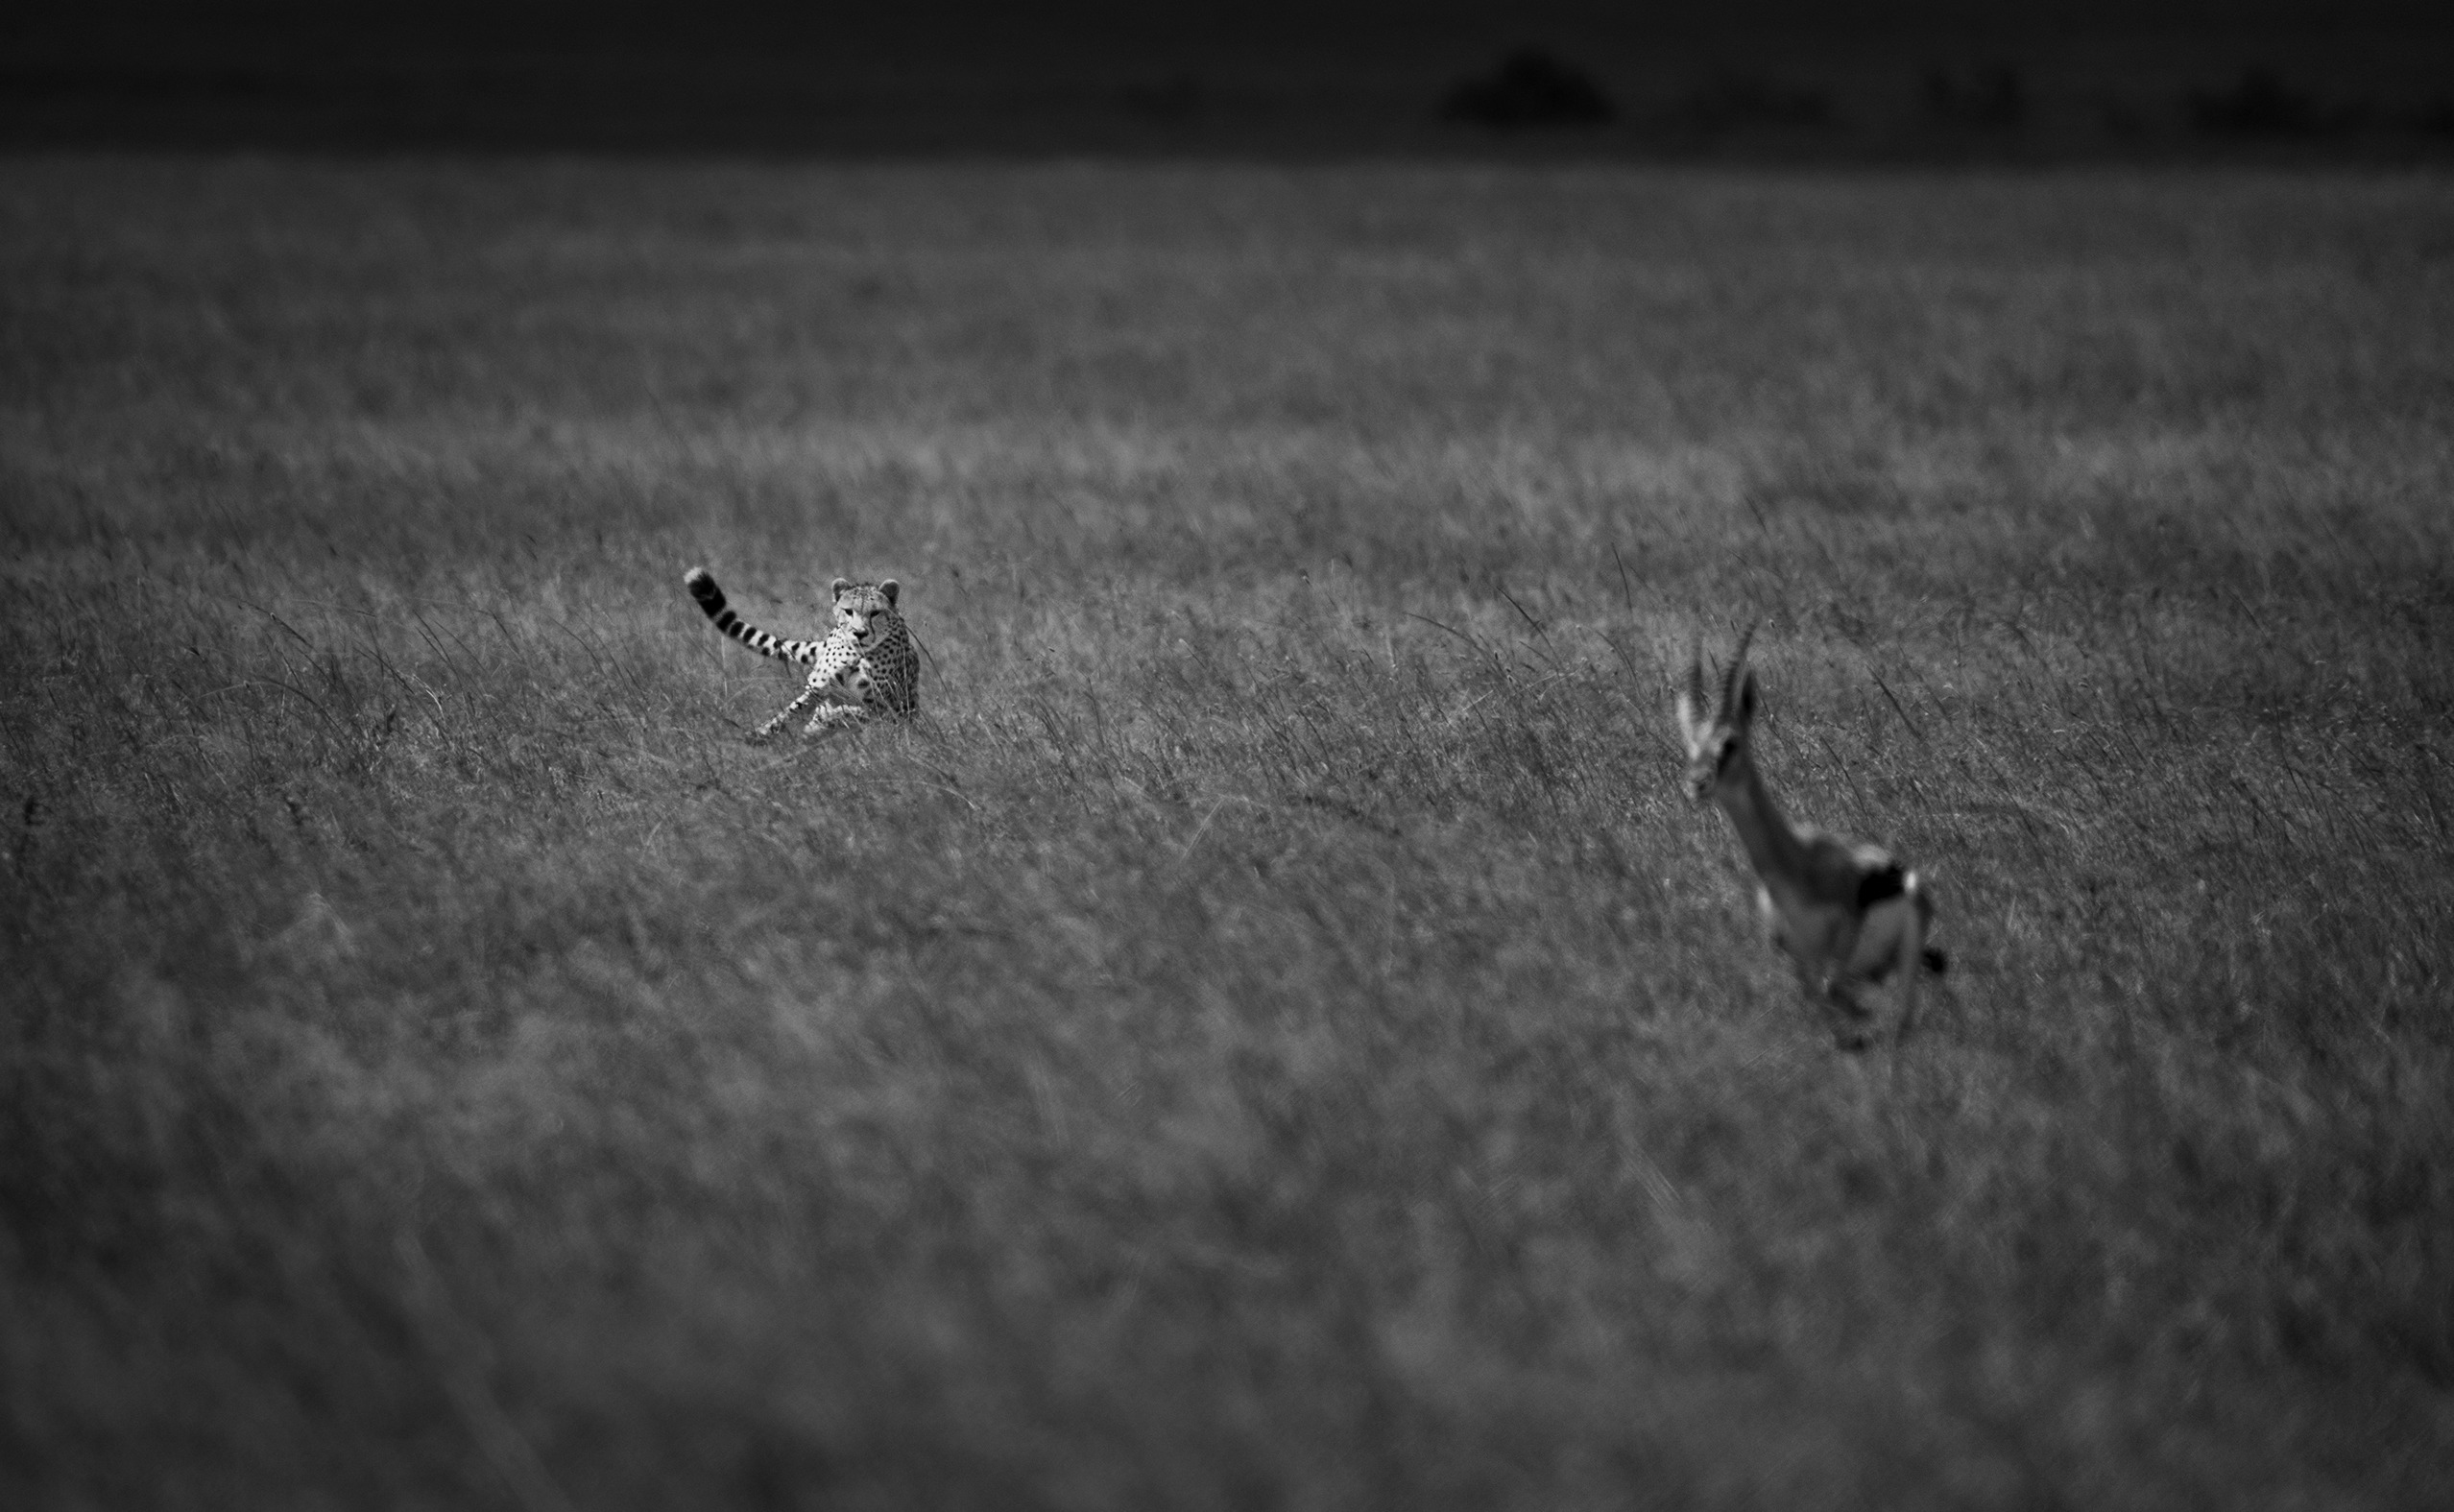 Cheetah on the hunt as photographer by Clement Kiragu